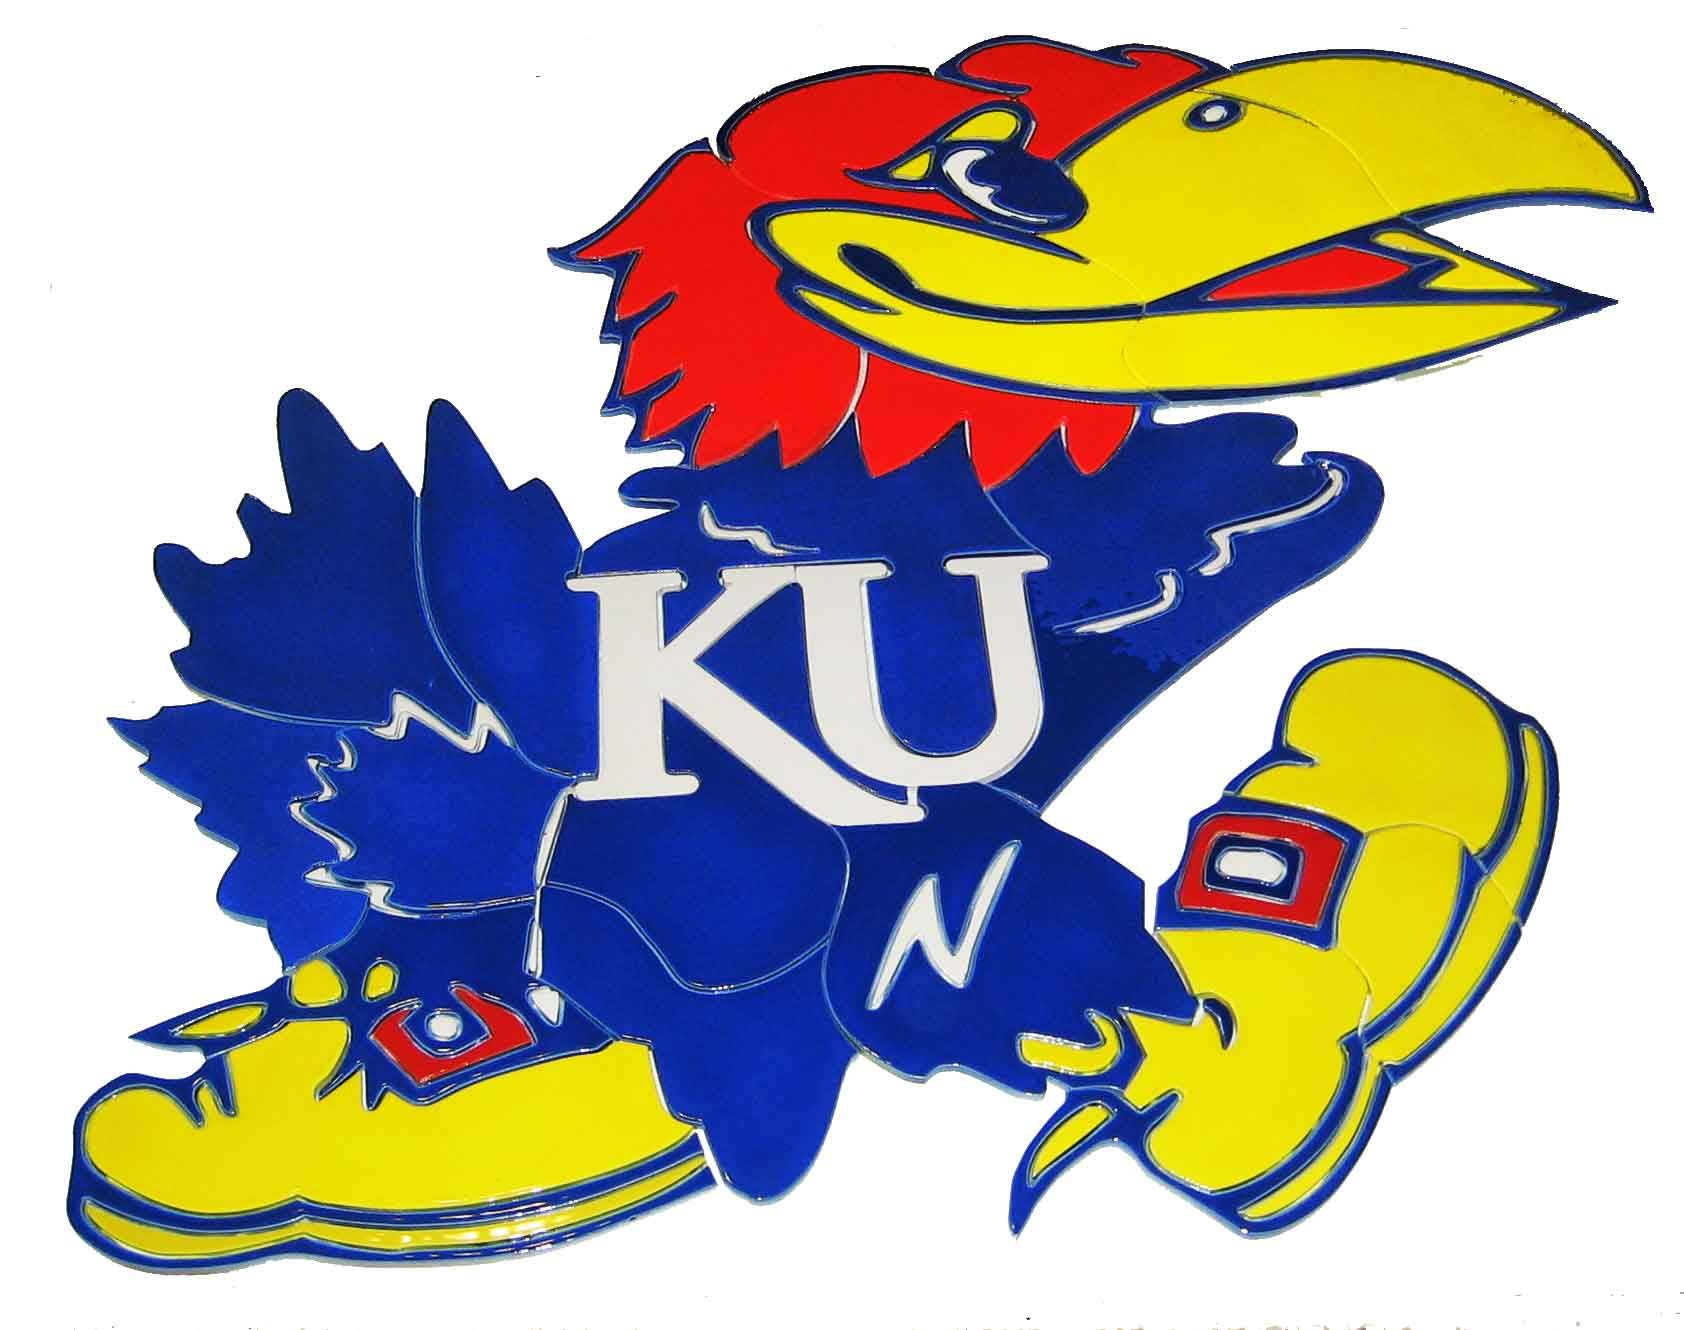 Kansas Jayhawks logo | Kansas basketball, Kansas jayhawks, Kansas day